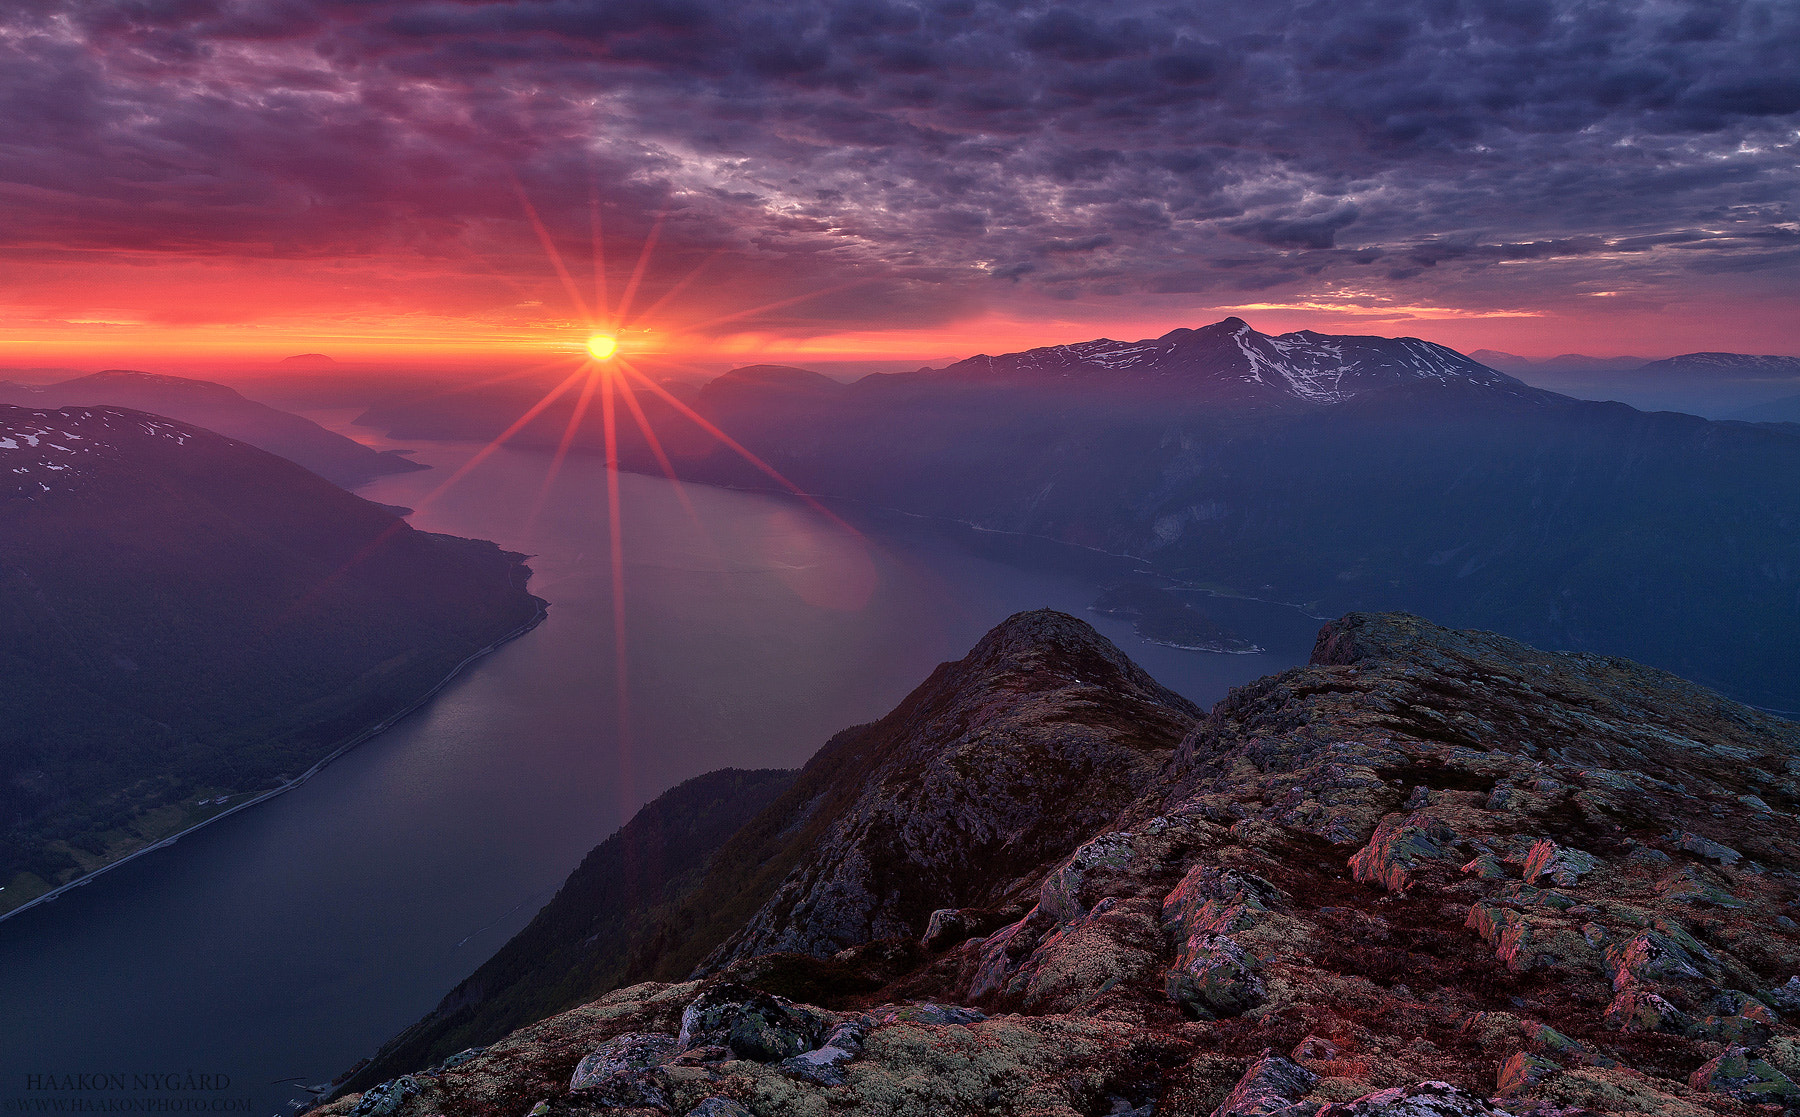 Photograph Red Star by Haakon Nygaard on 500px